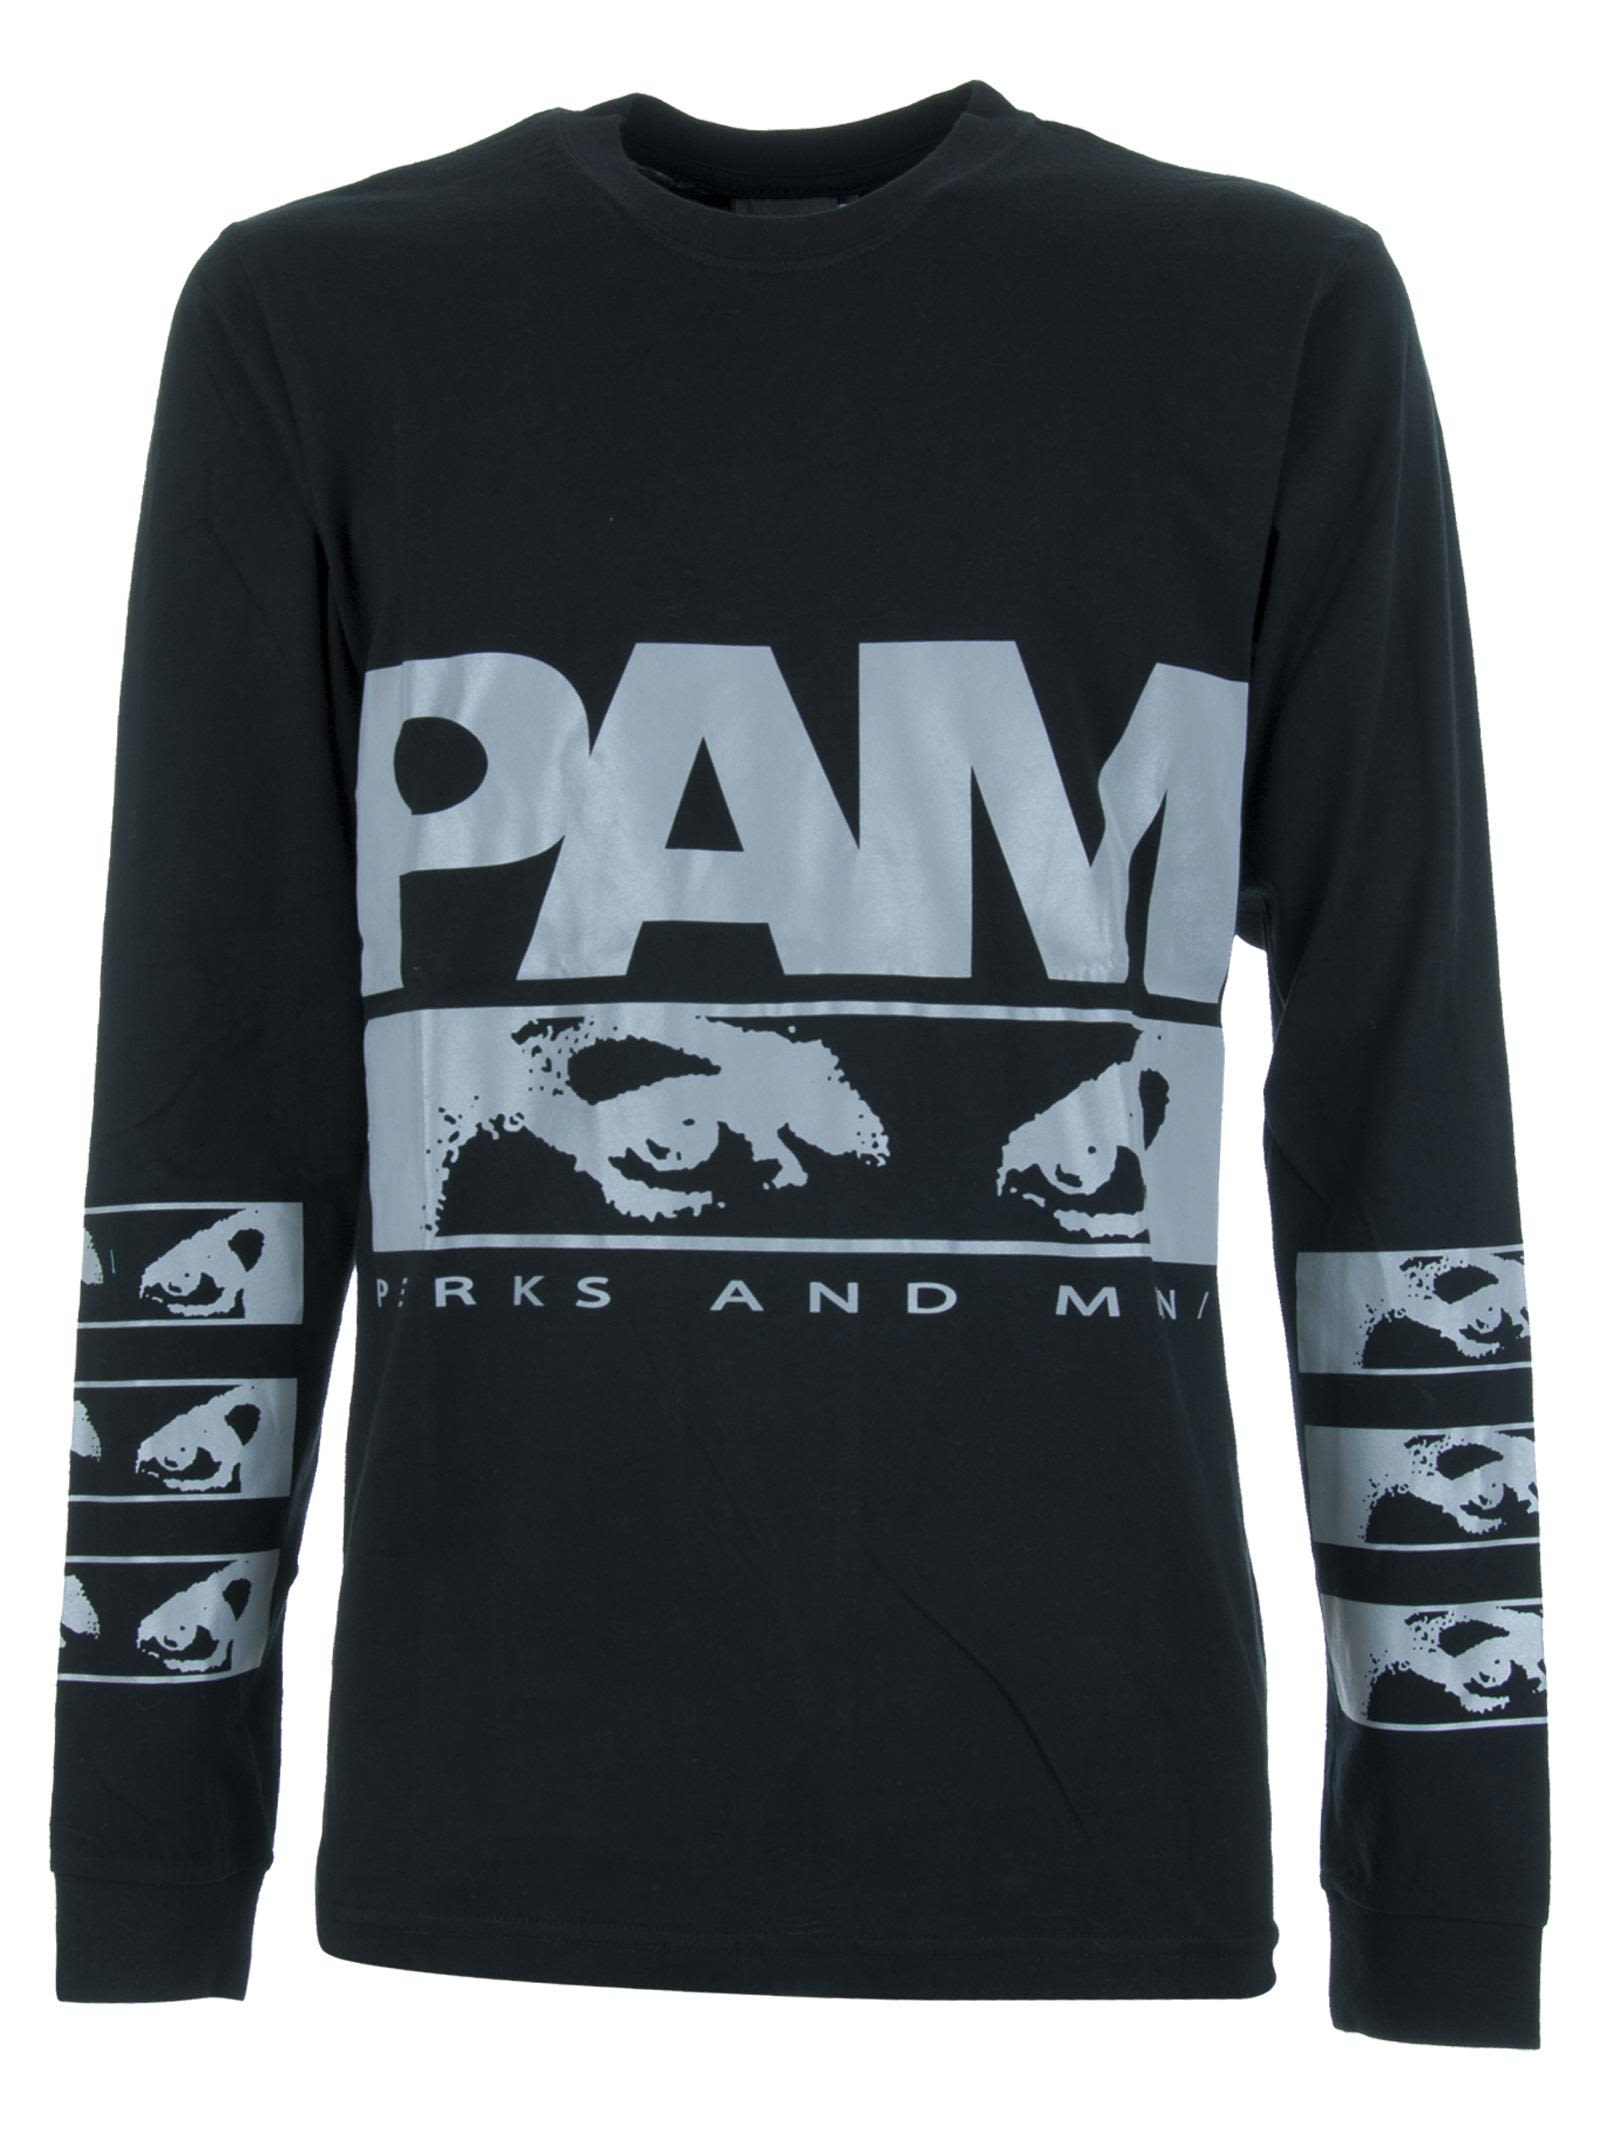 Perks And Mini P.a.m P.a.maiden L/s Tee